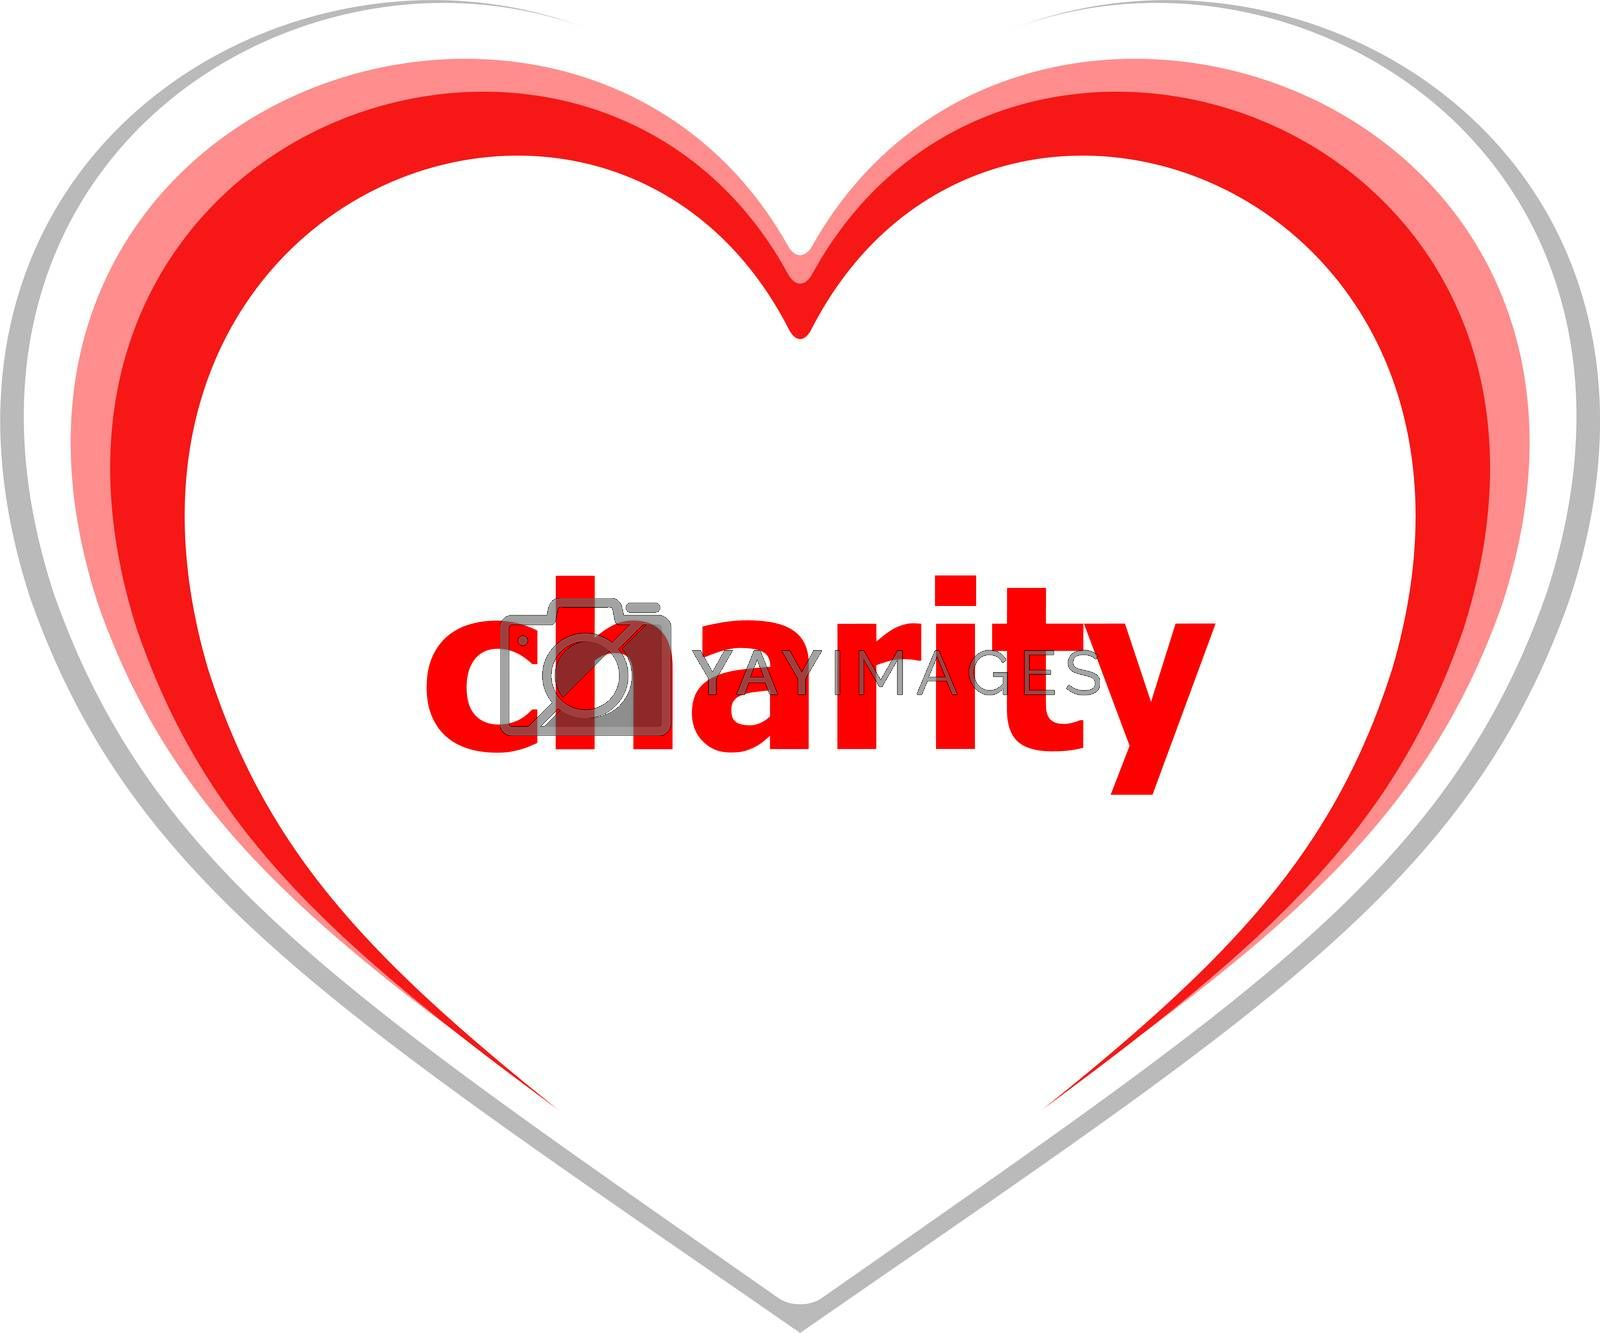 Text Charity. Social concept